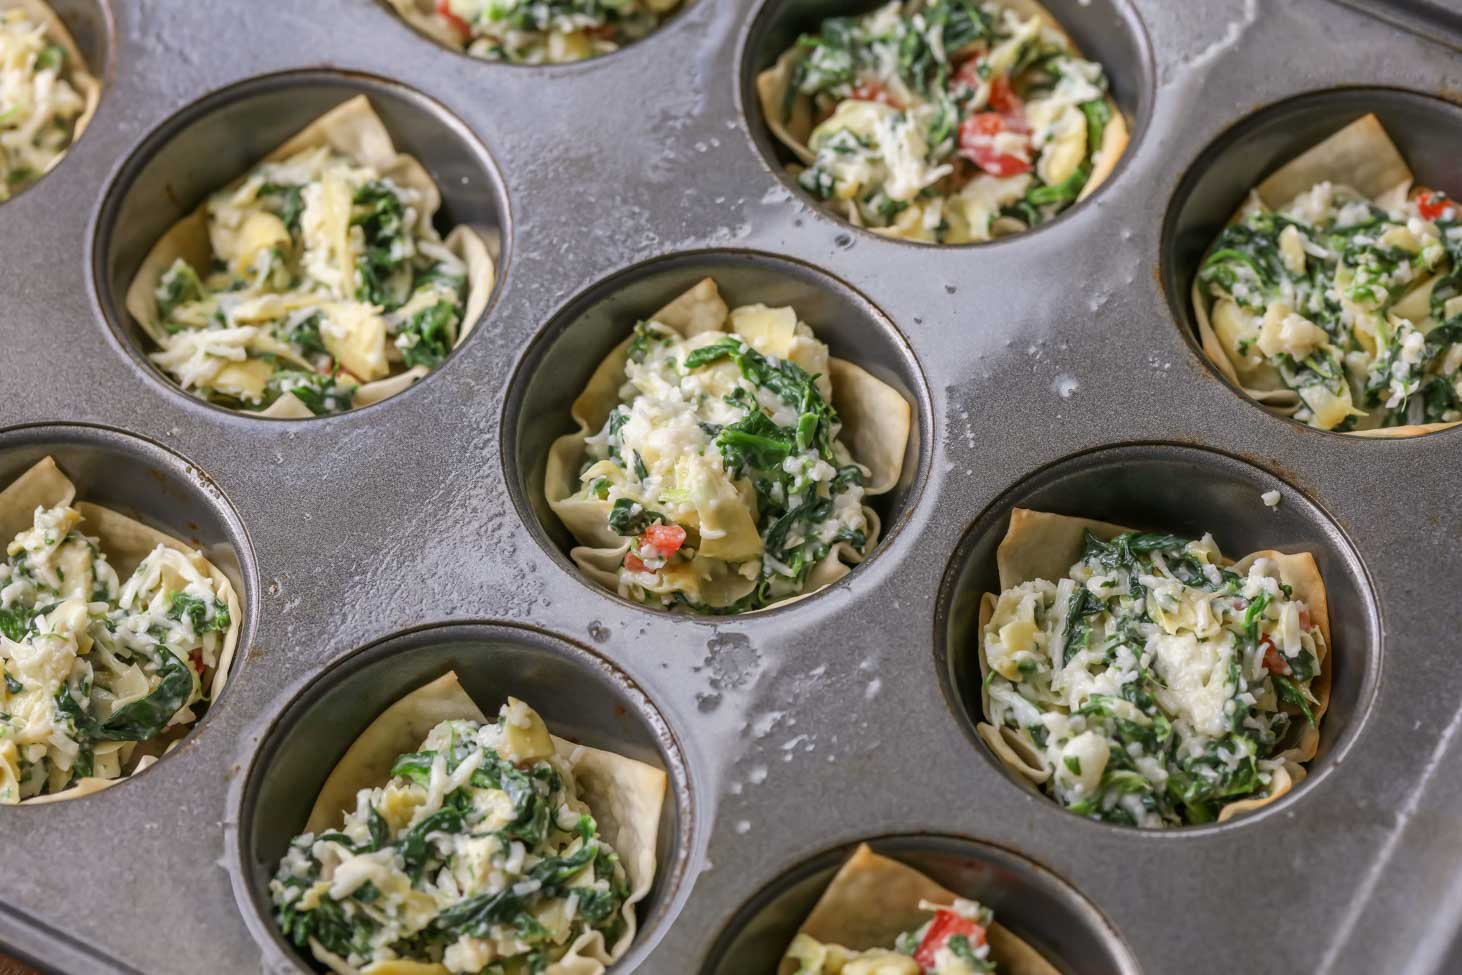 How to Make Spinach Artichoke Cups in Muffin Tins